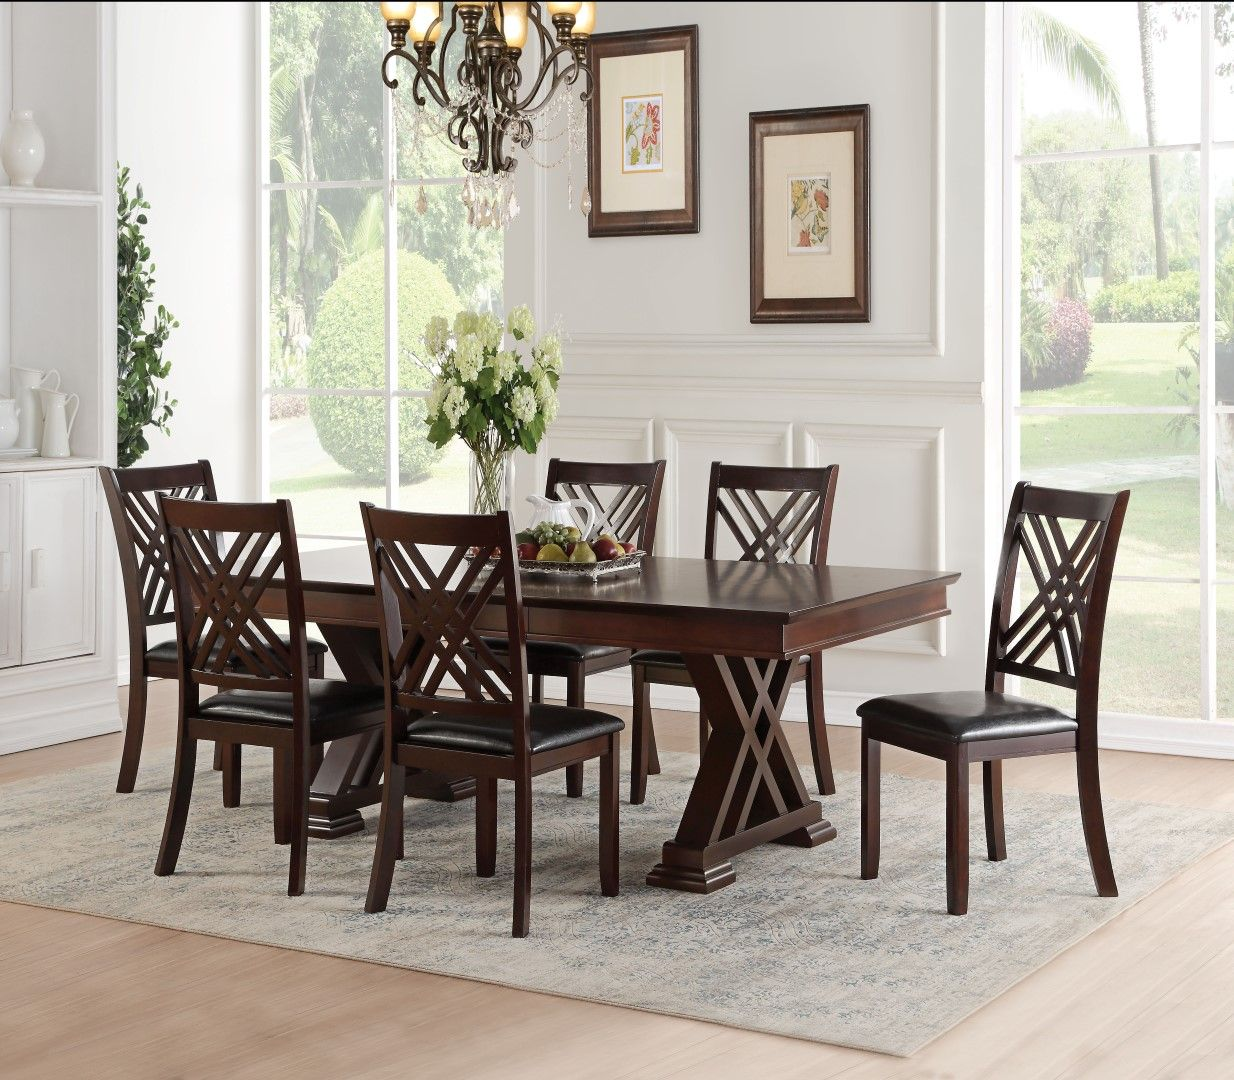 Acme 71855 Katrien Espresso Wood Finish 7 Piece Dining Table Set